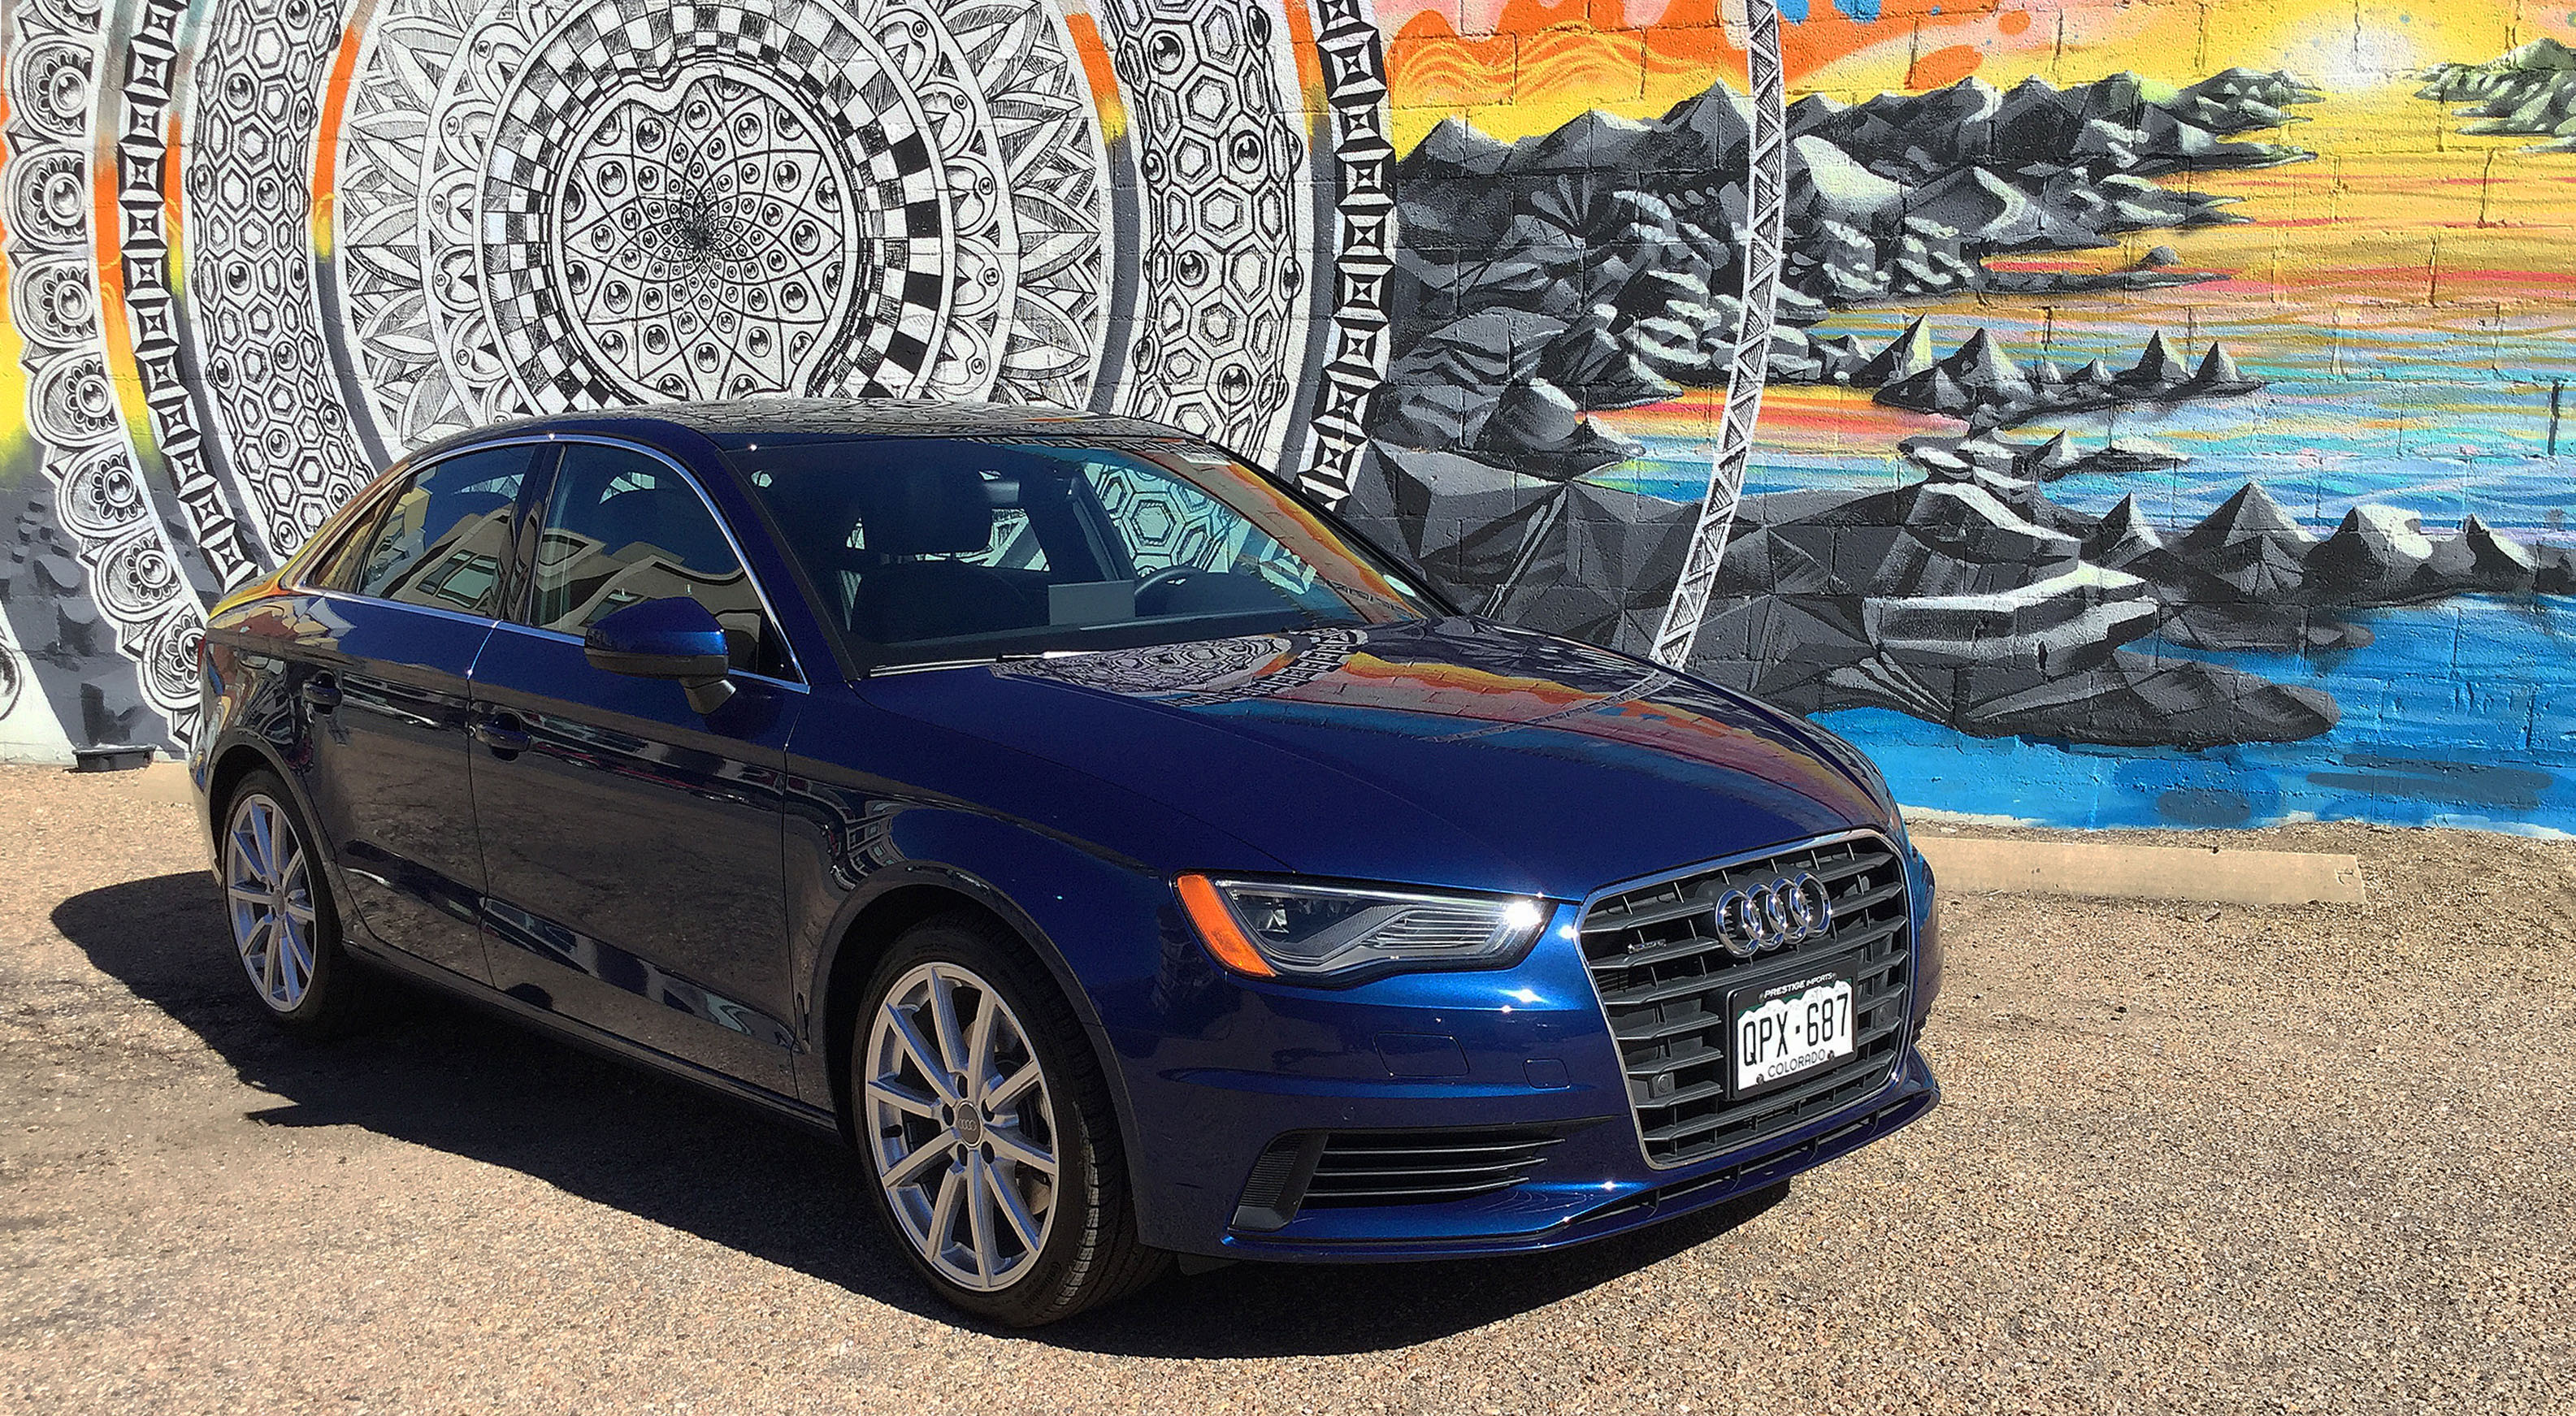 The Audi A3 in front of an interesting mural in Denver's RiNo Art District.